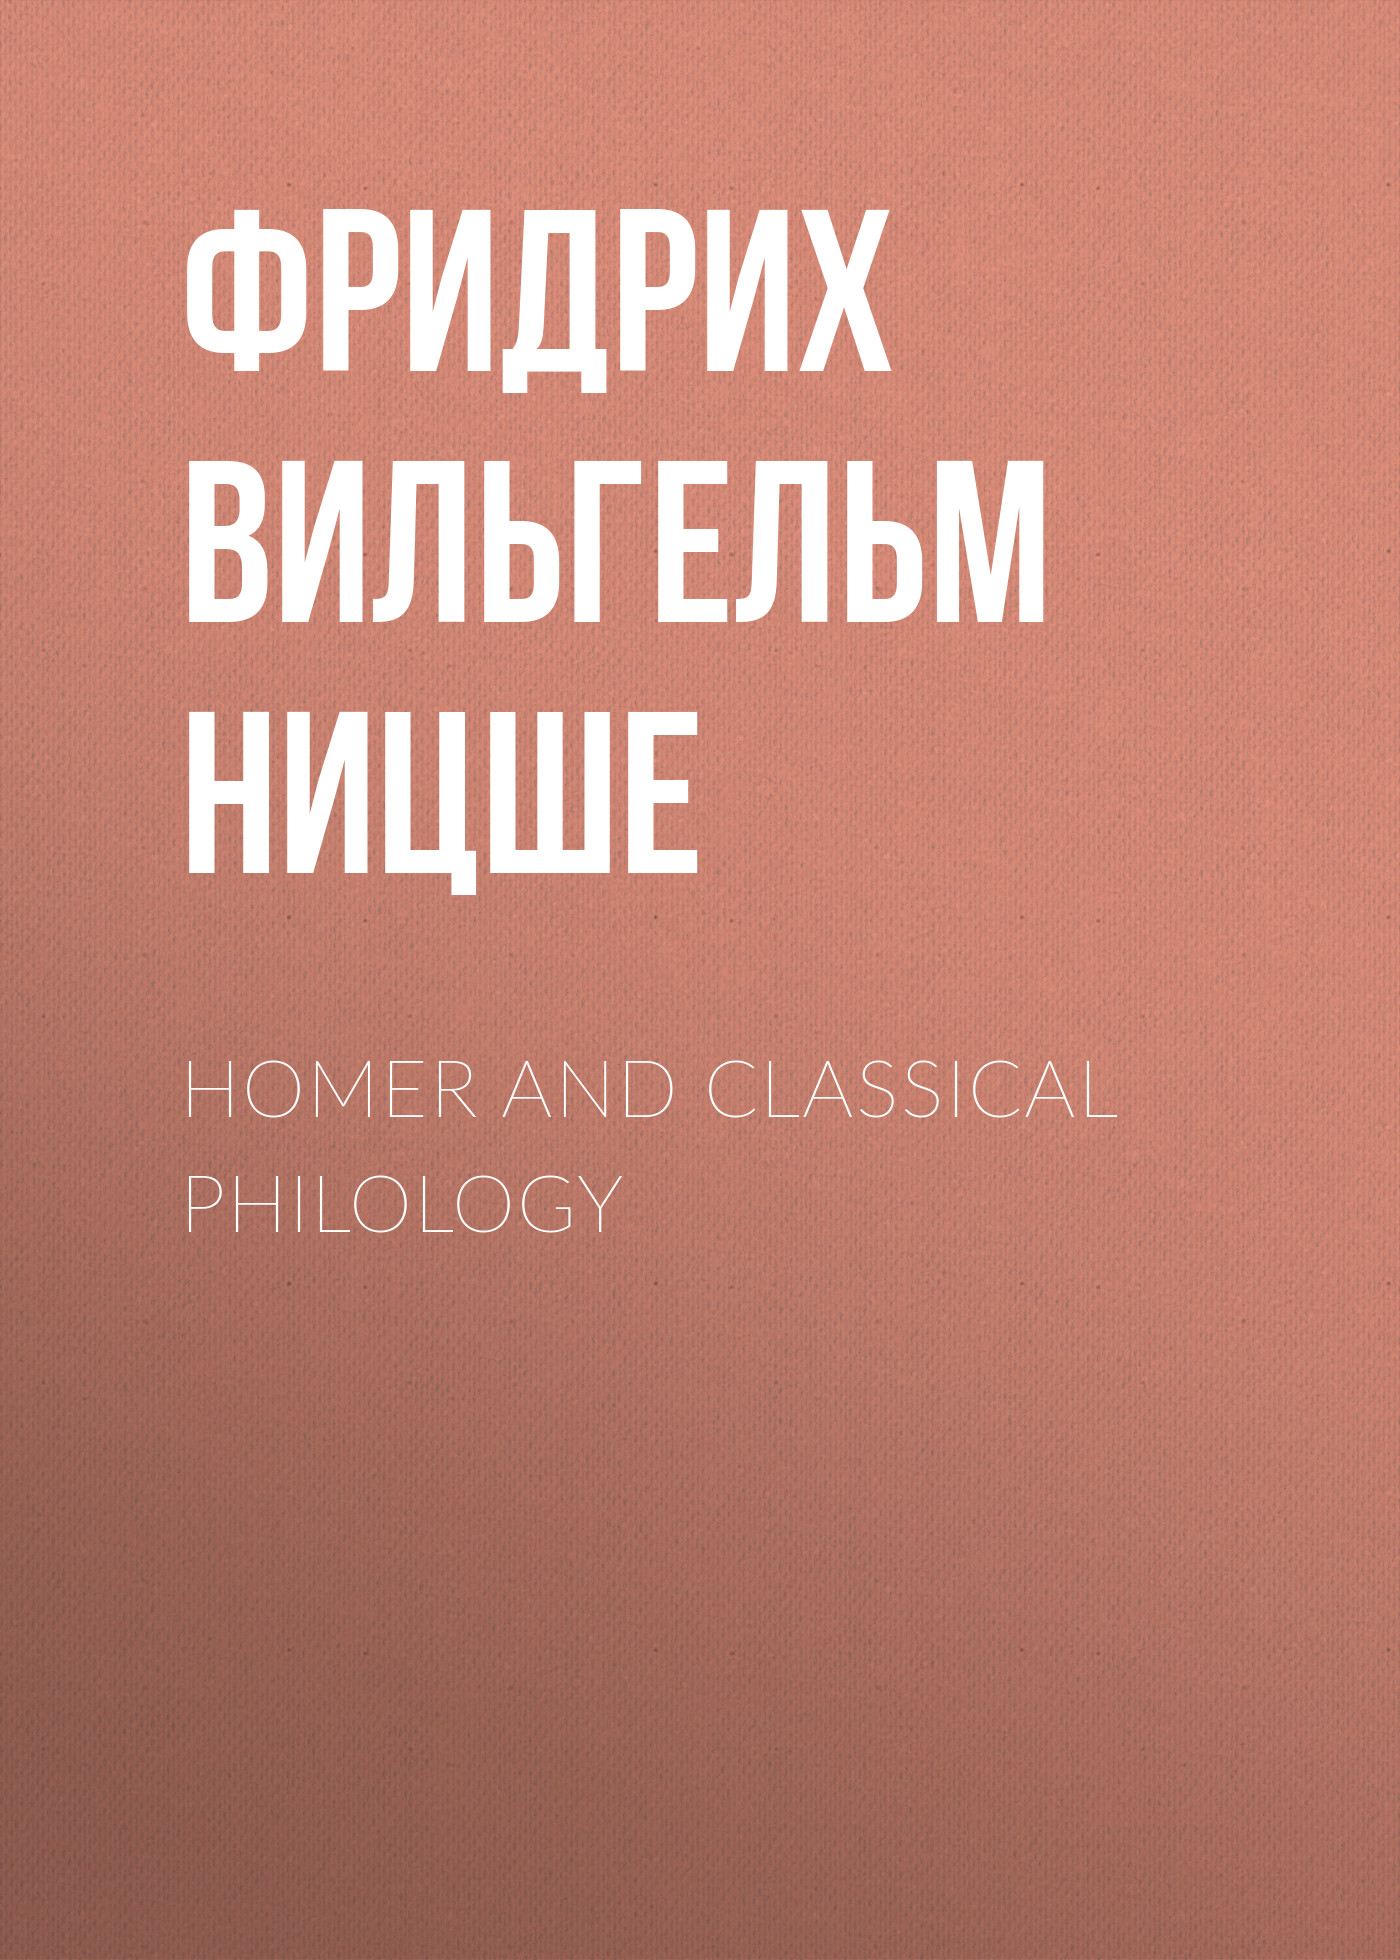 Фридрих Вильгельм Ницше Homer and Classical Philology lightfoot joseph barber the journal of classical and sacred philology volume 1